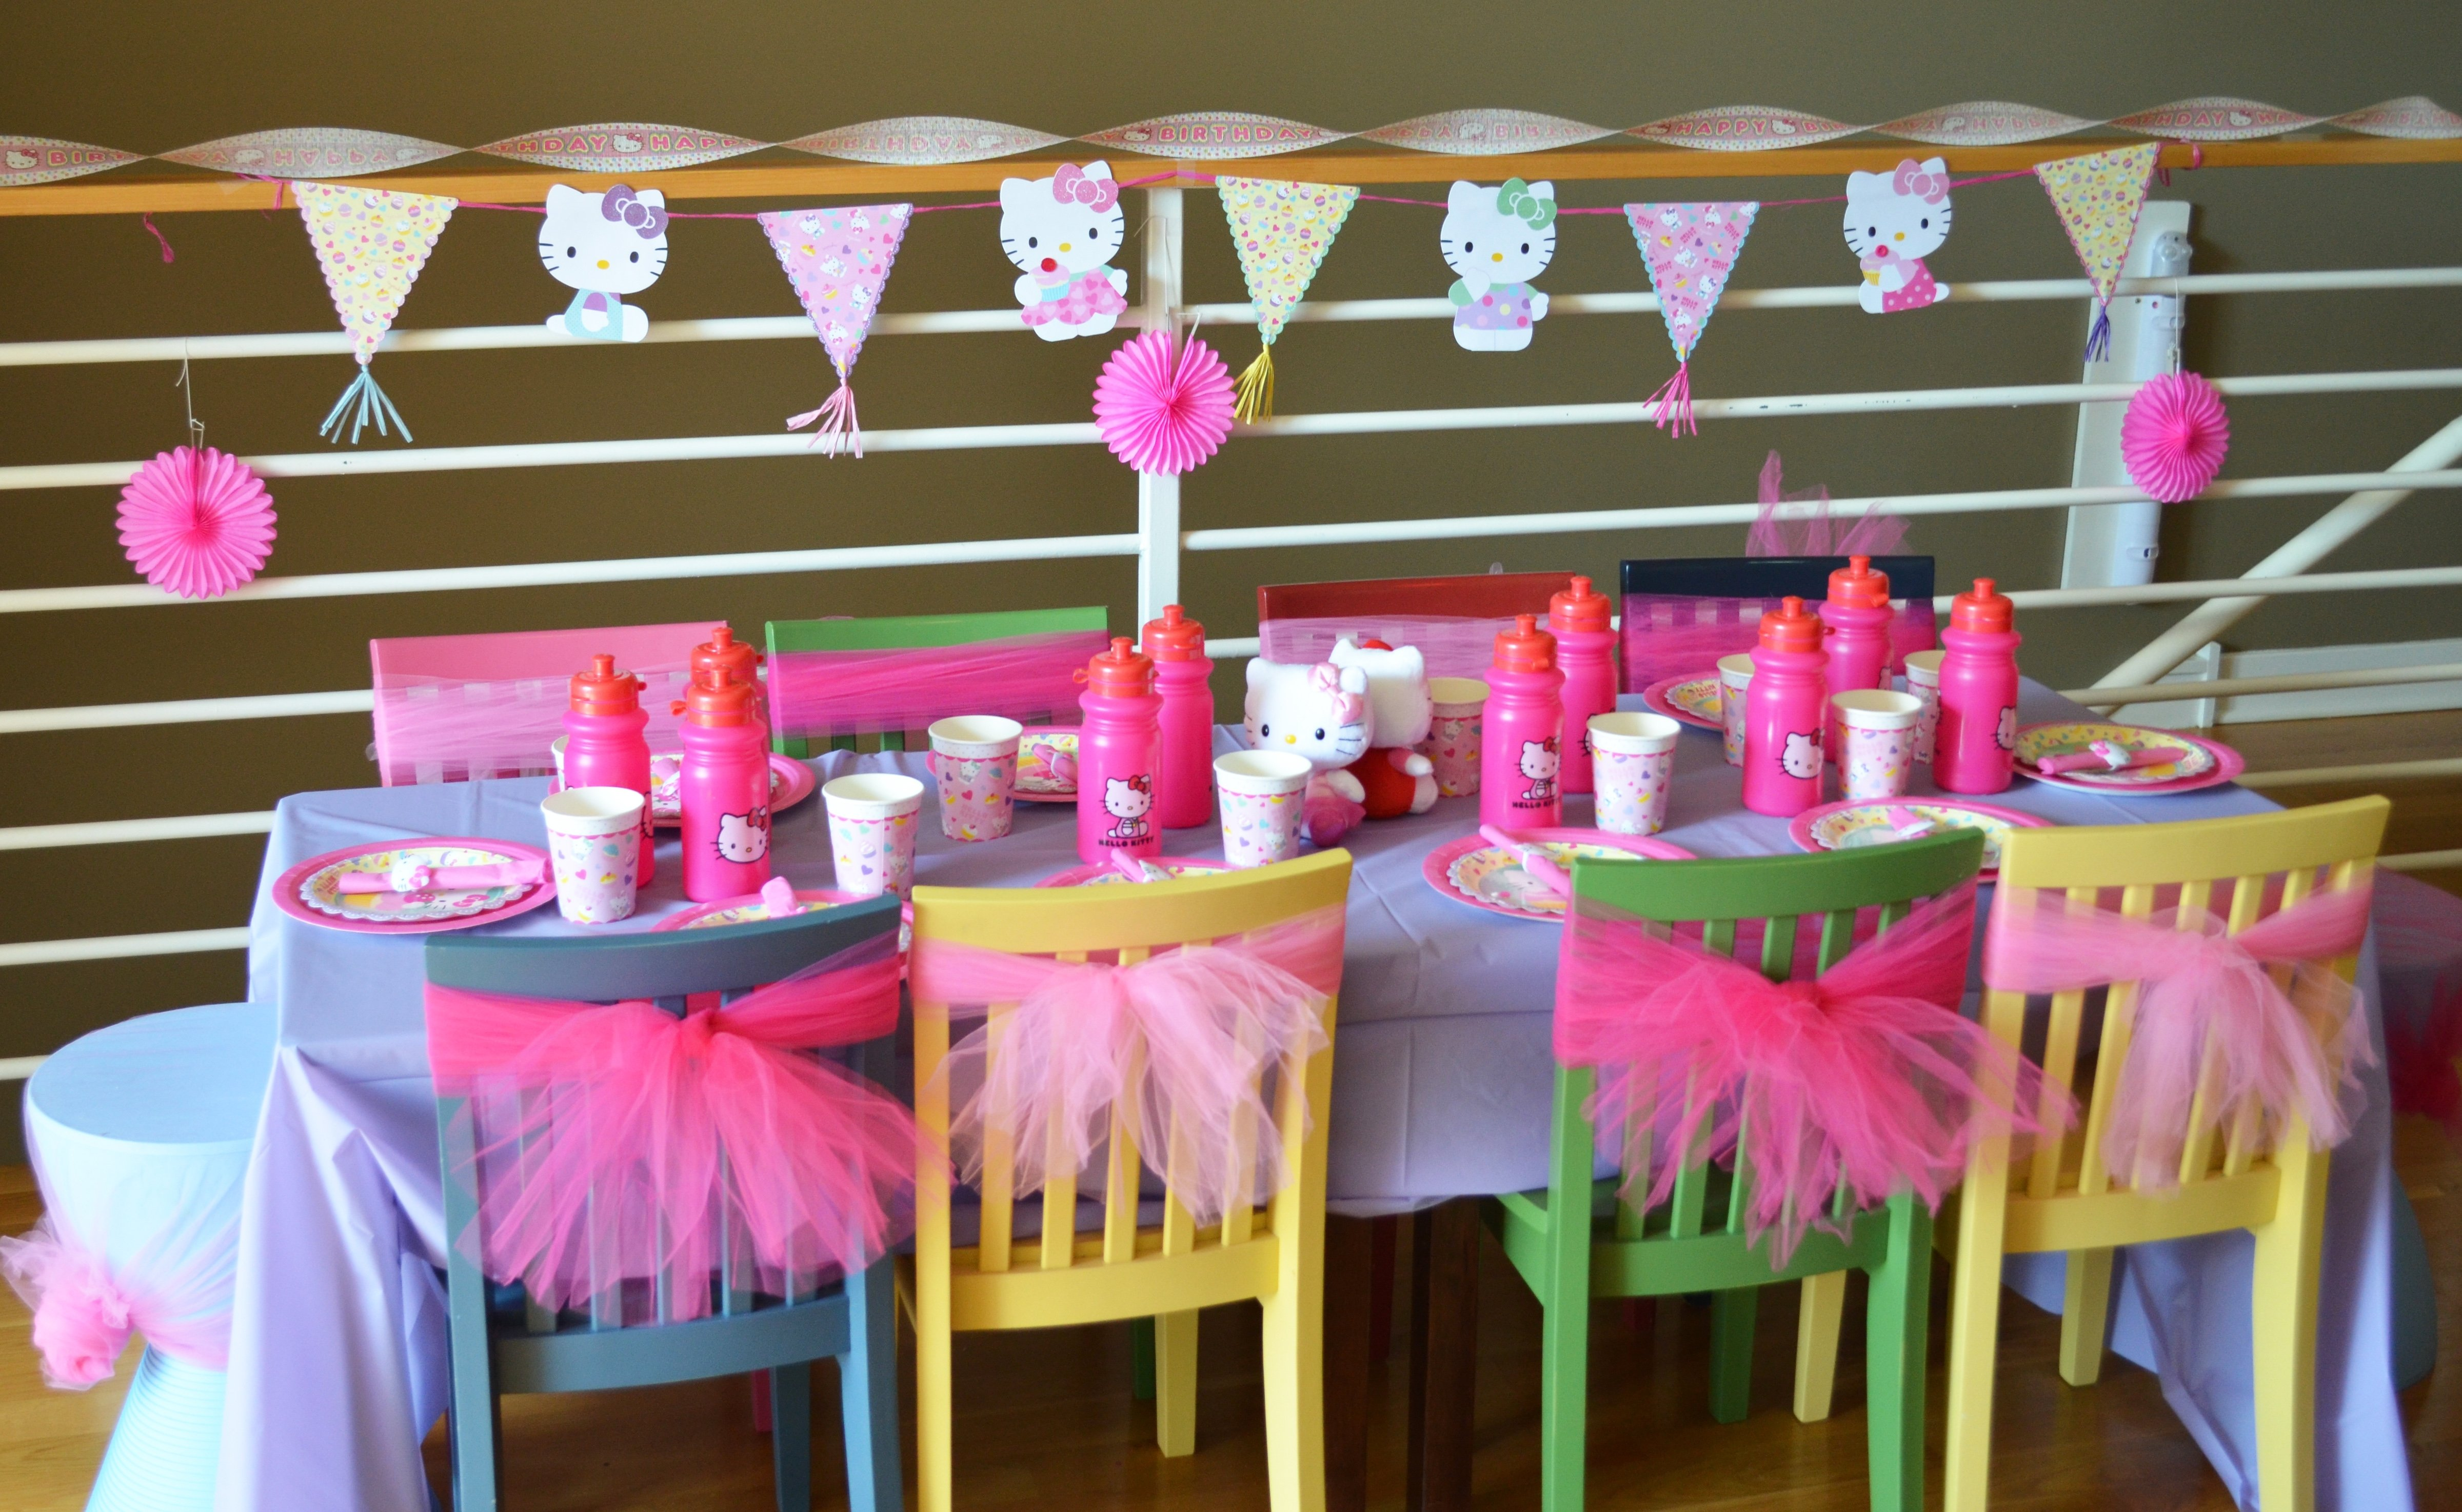 10 Stylish Birthday Party Ideas For 8 Year Old Girls a how to hello kitty birthday party ay mama 4